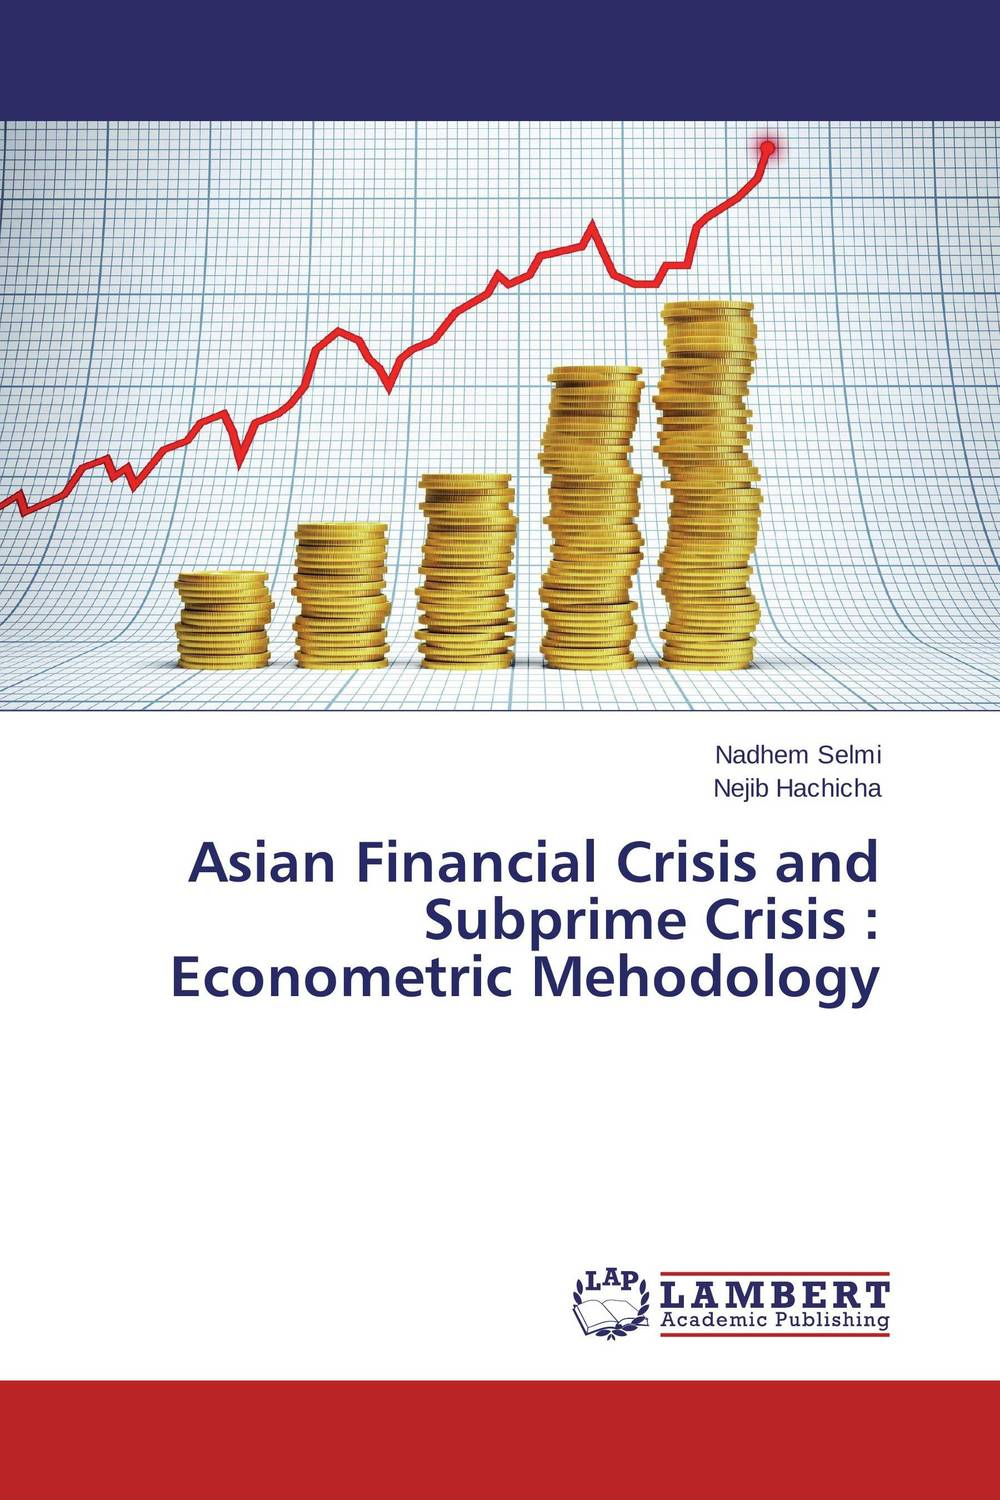 Asian Financial Crisis and Subprime Crisis : Econometric Mehodology soemarso slamet rahardjo stock market crisis evidence of speculative behaviour